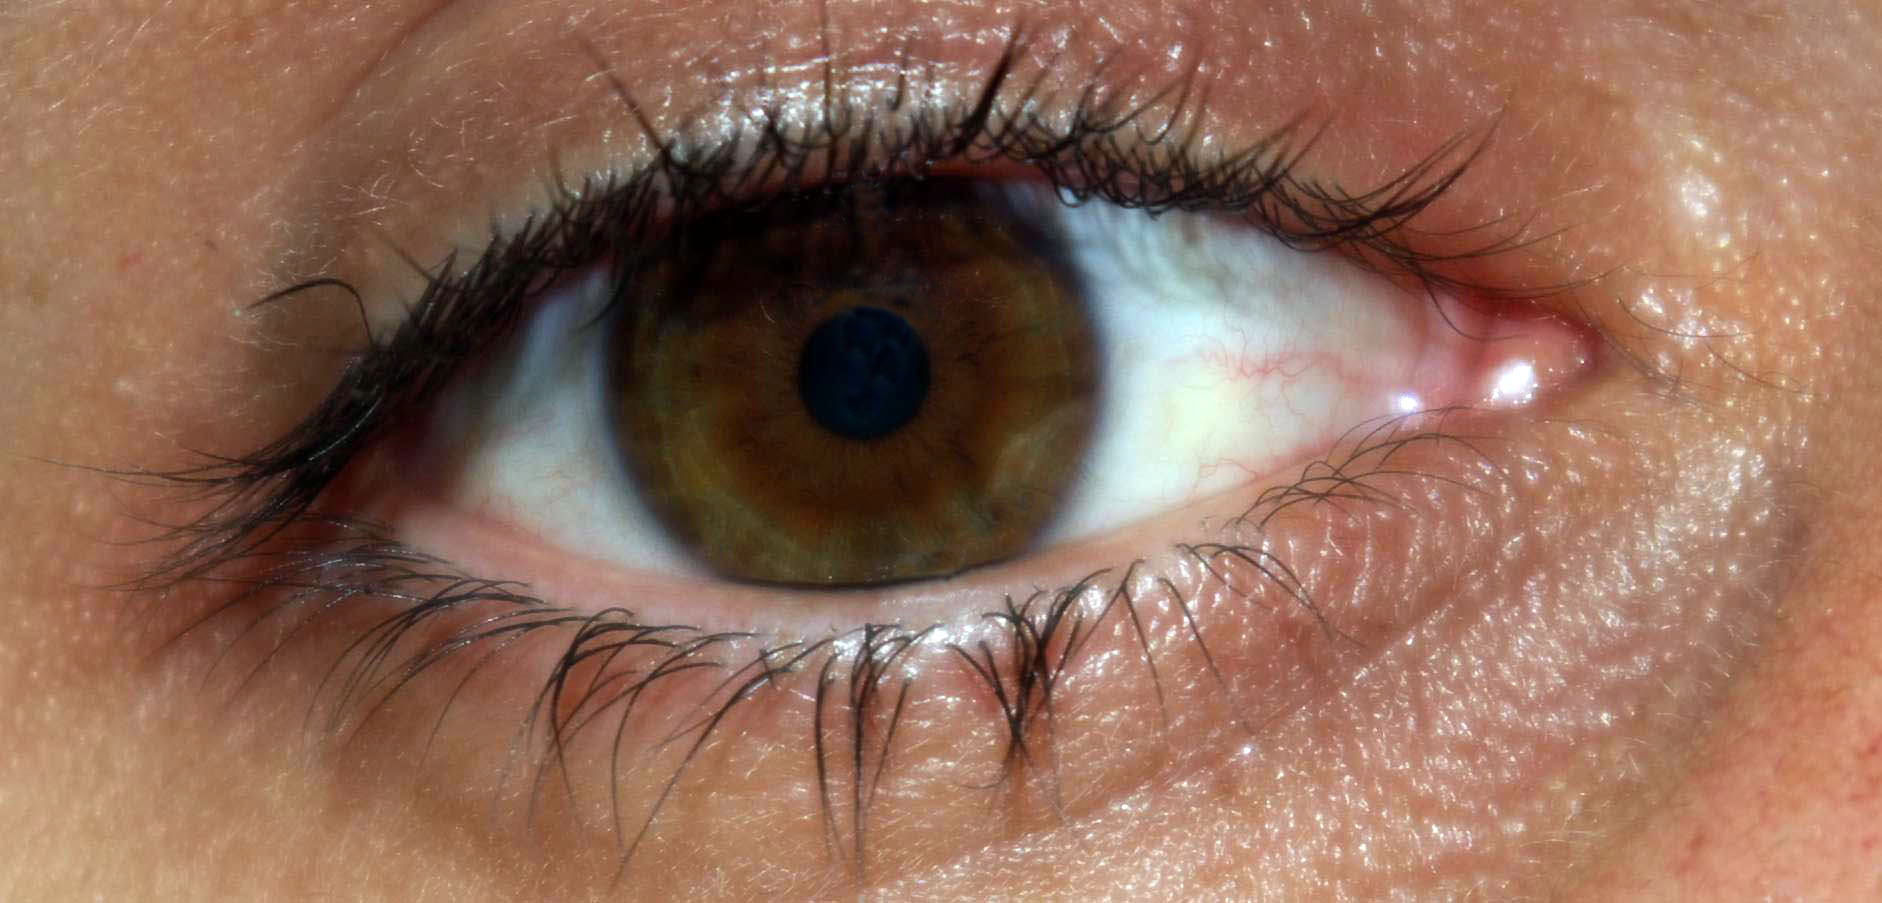 Iris Colored Contacts